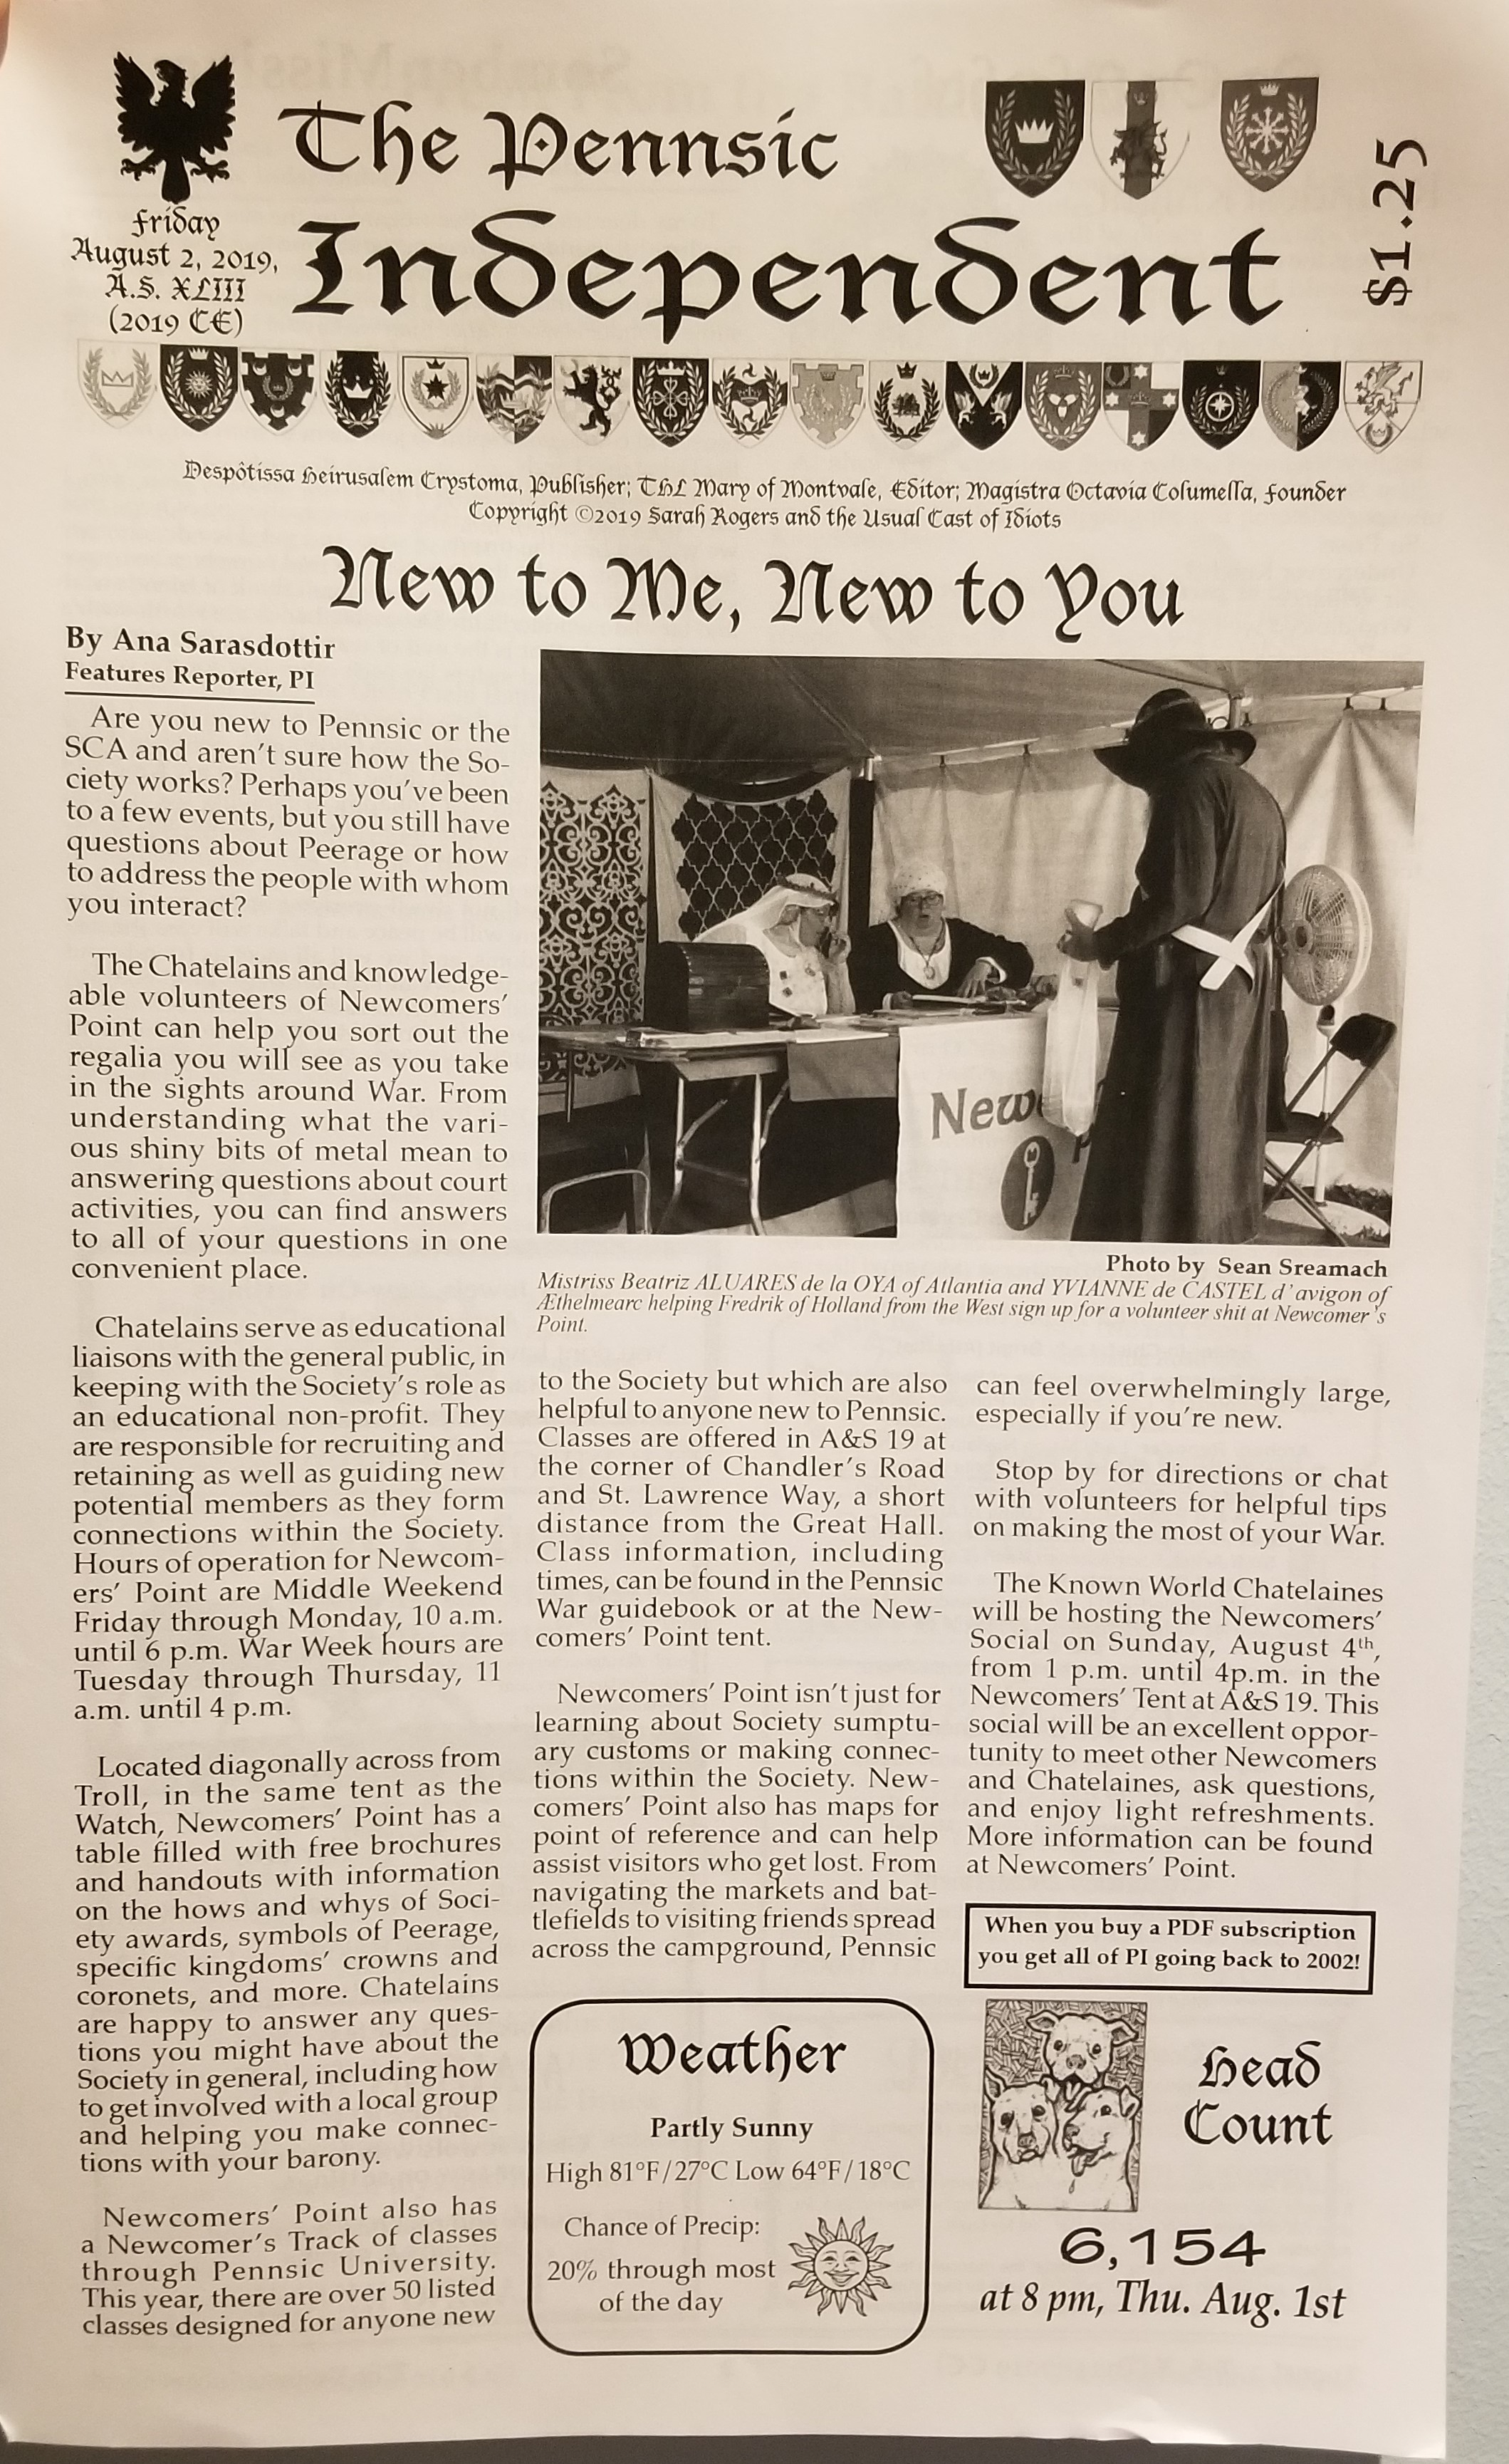 Pennsic Independent, Friday August 2st, 2019